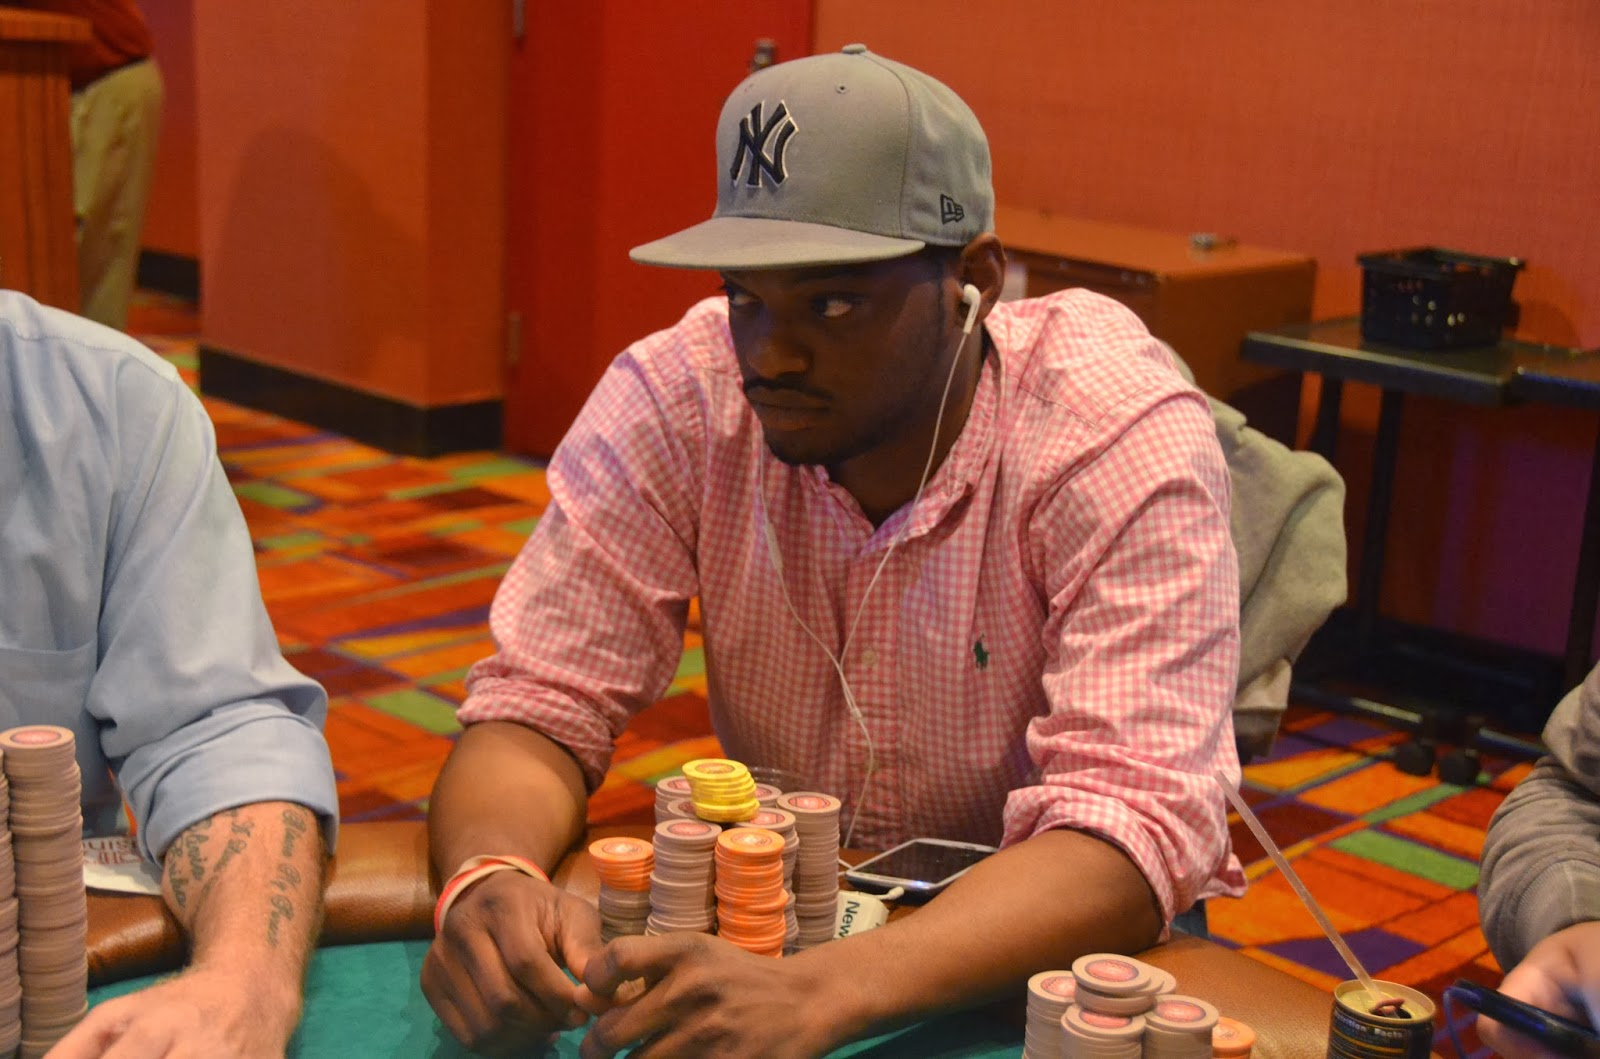 Parx big stax iv big stax 300 day 3 20th place hillard 2 429 for Parx poker room live game report